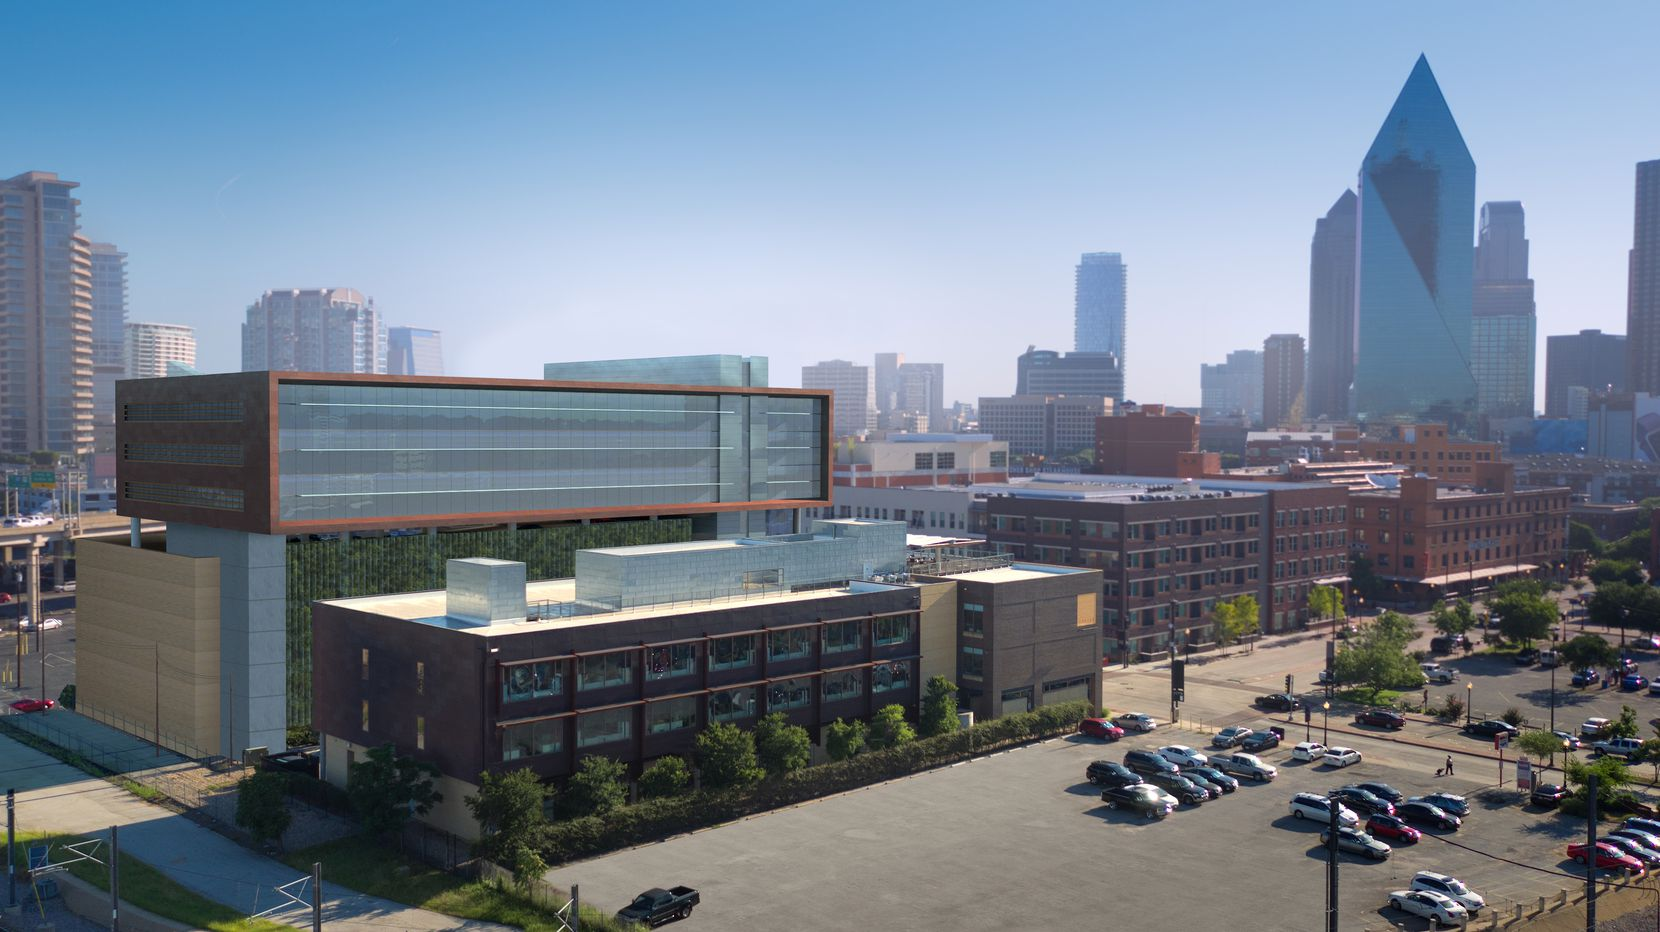 The new Luminary building was designed by architect Corgan who will also occupy part of the project.